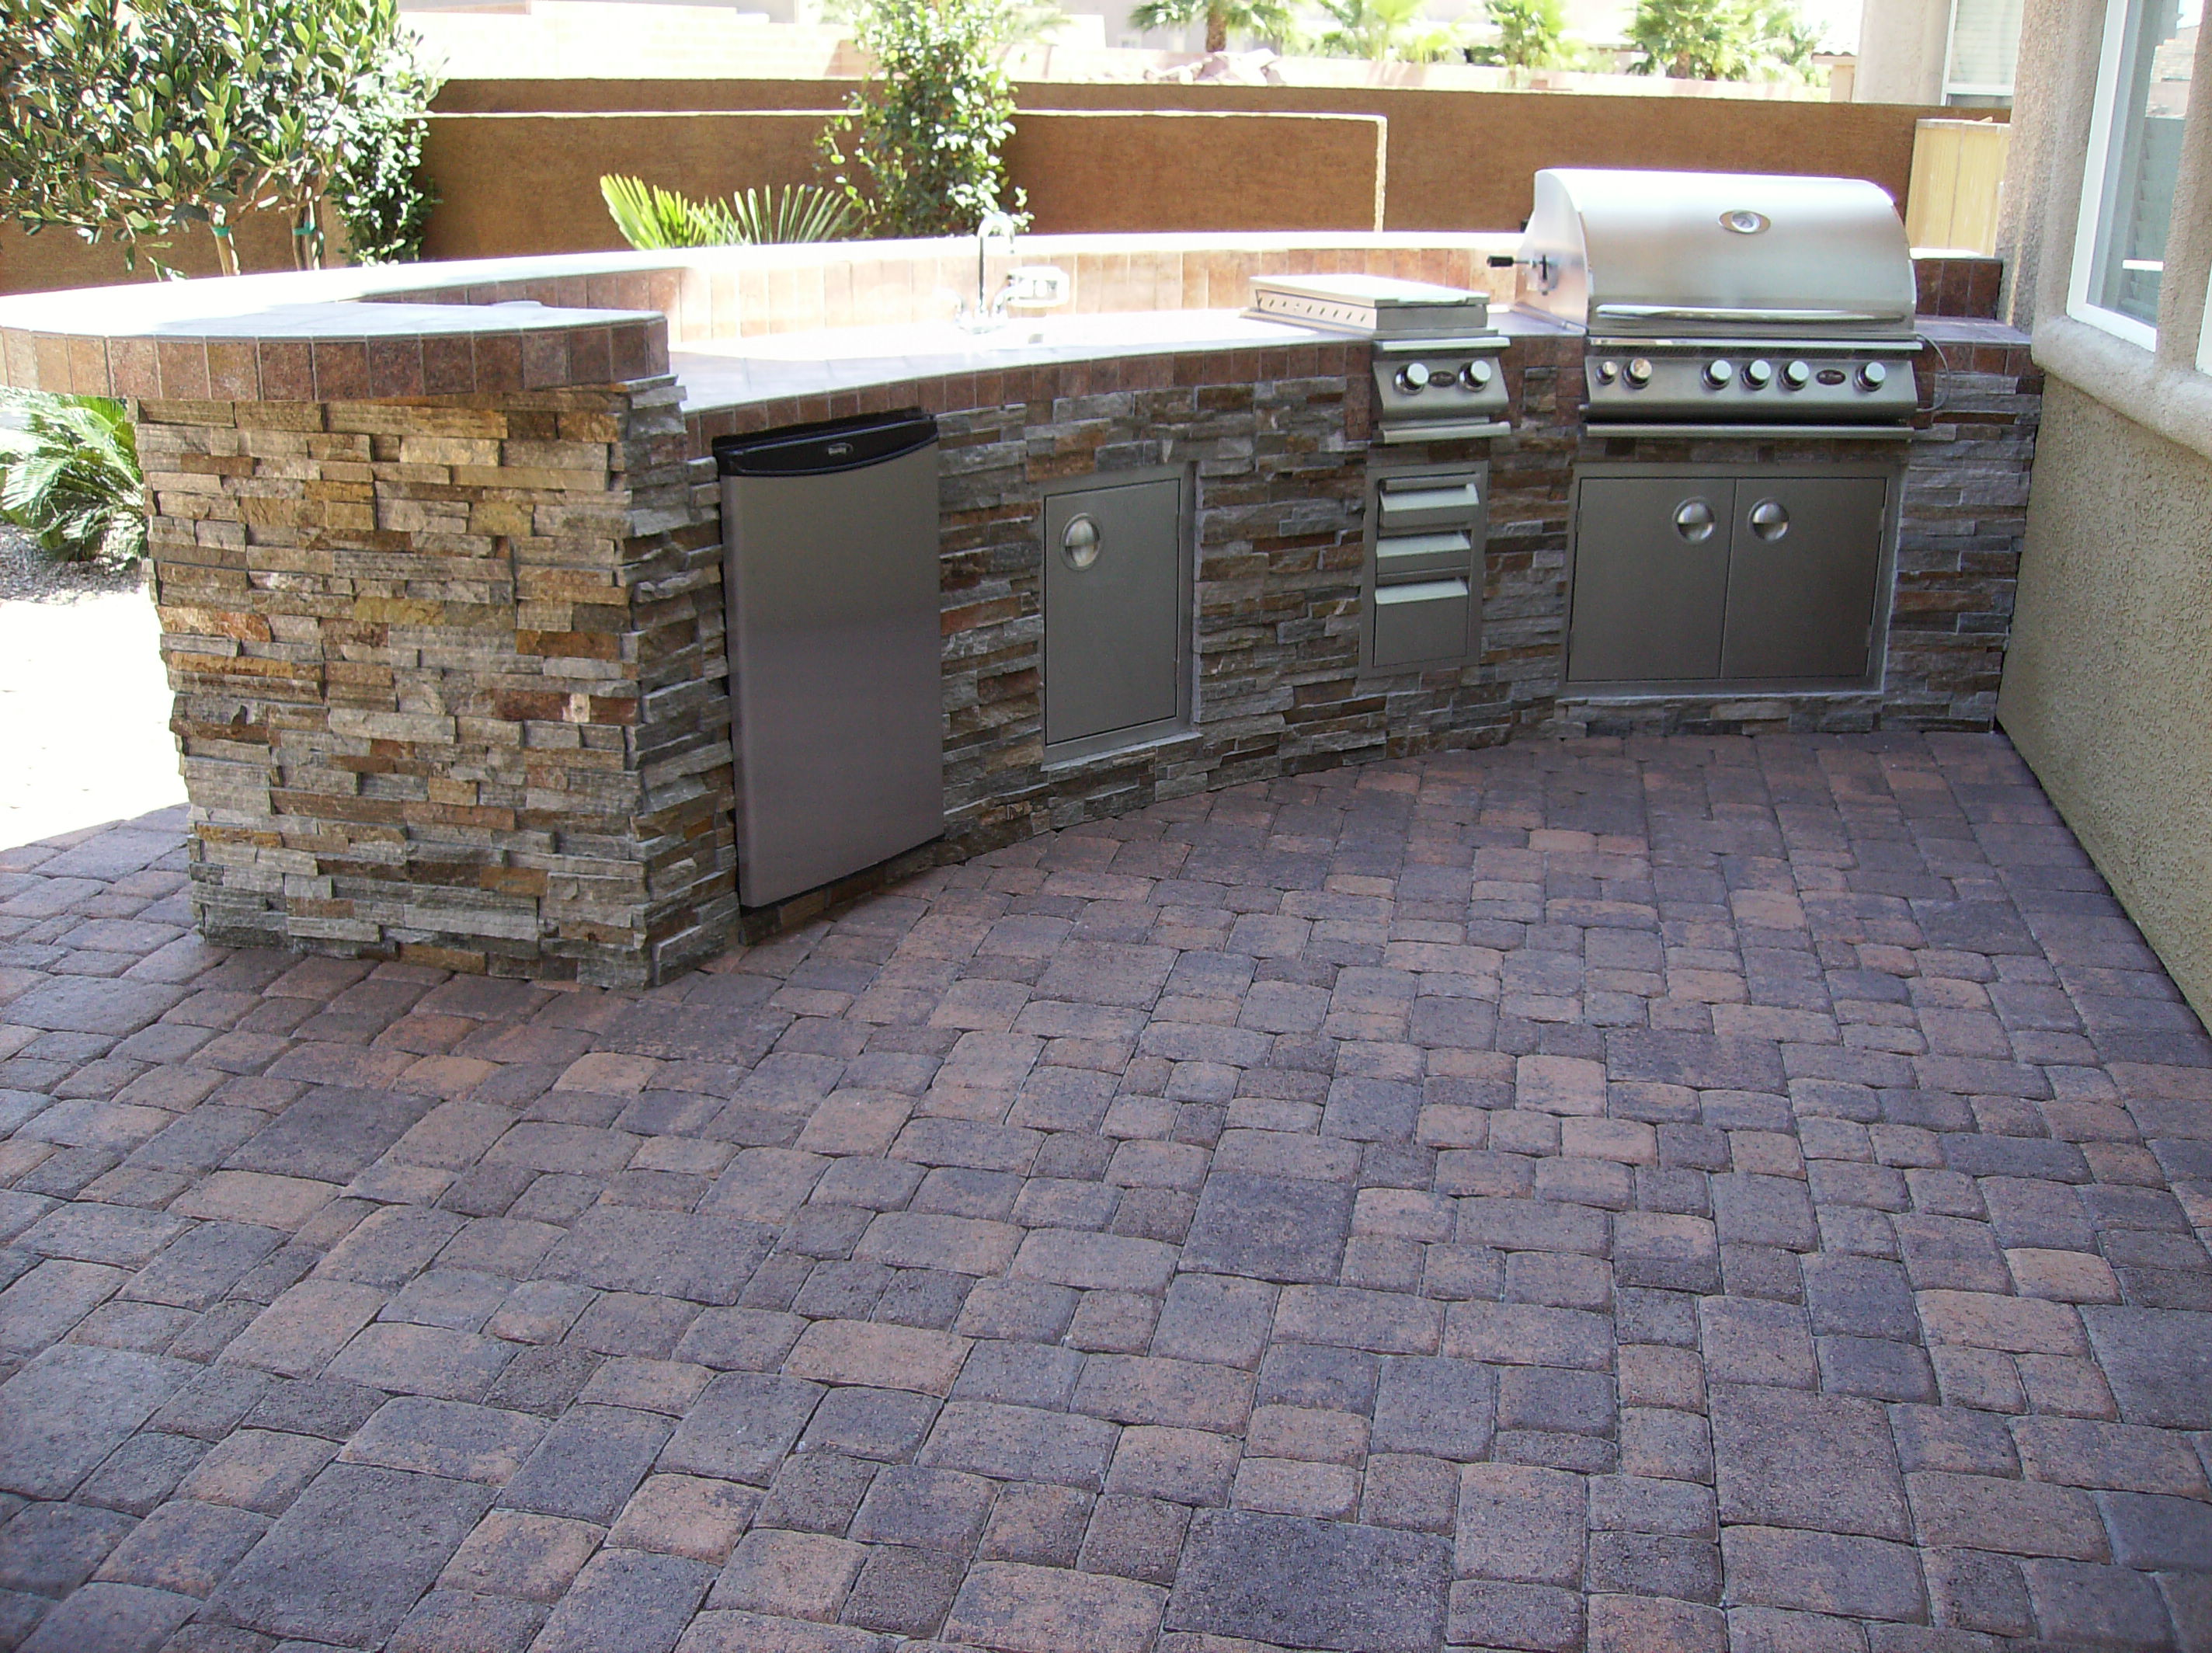 2 062 Las Vegas Outdoor Kitchens And Barbecues